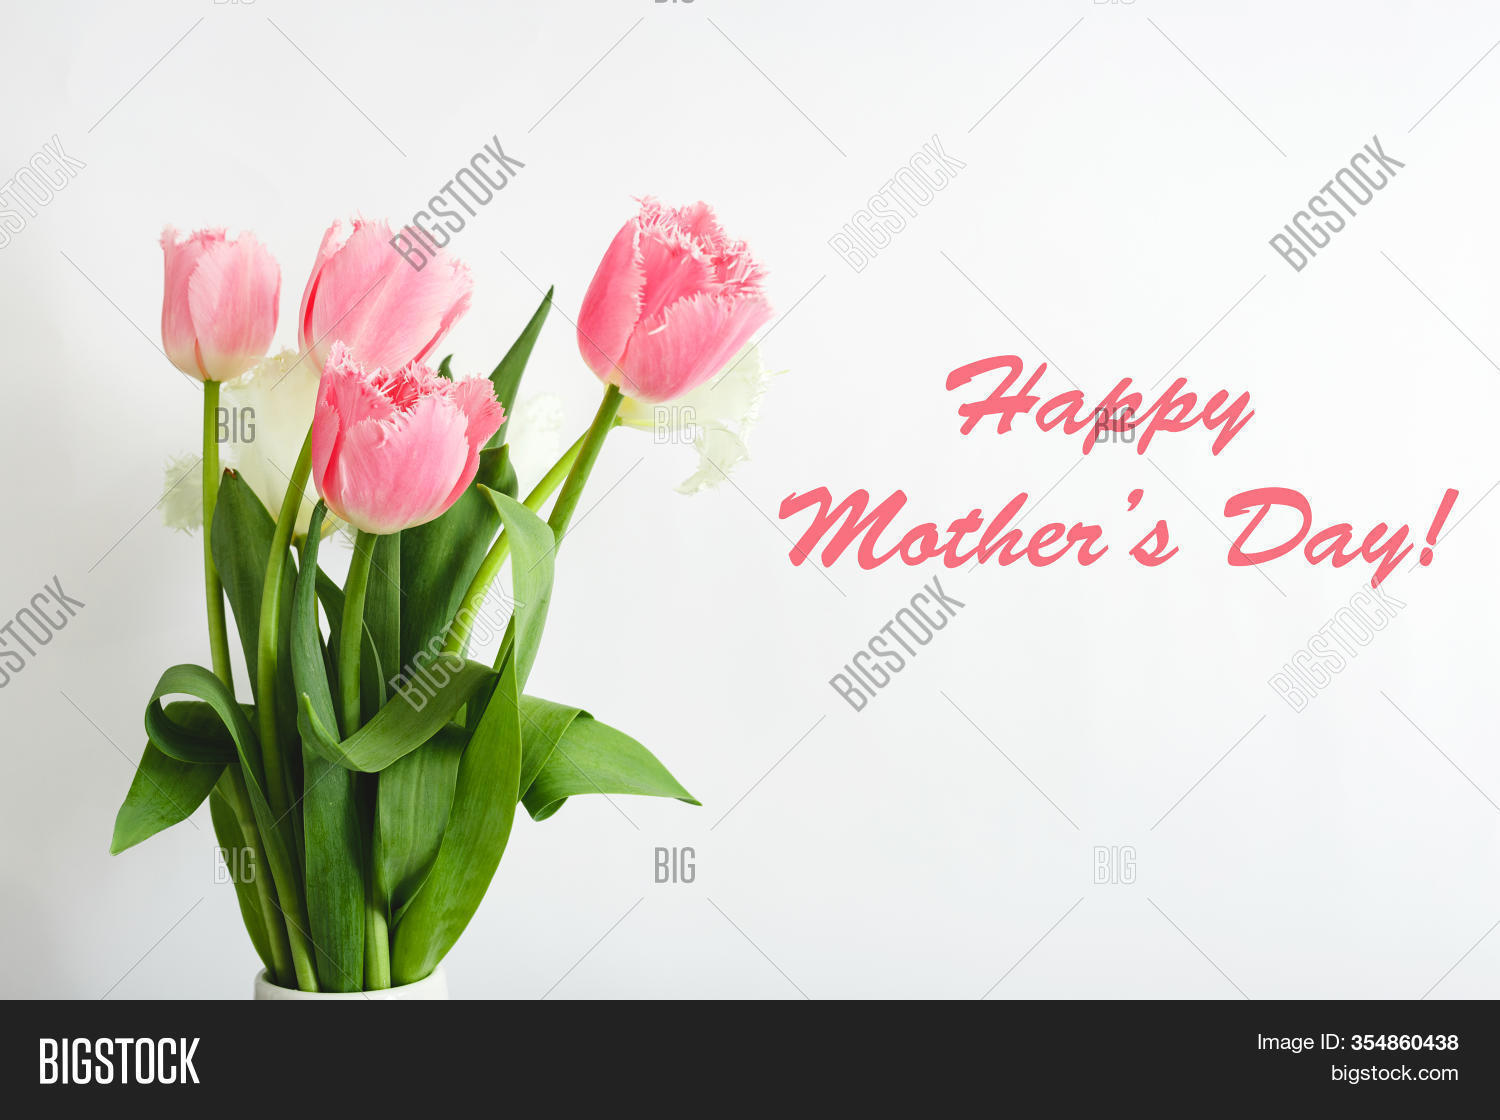 Happy Mothers Day Text Image Photo Free Trial Bigstock